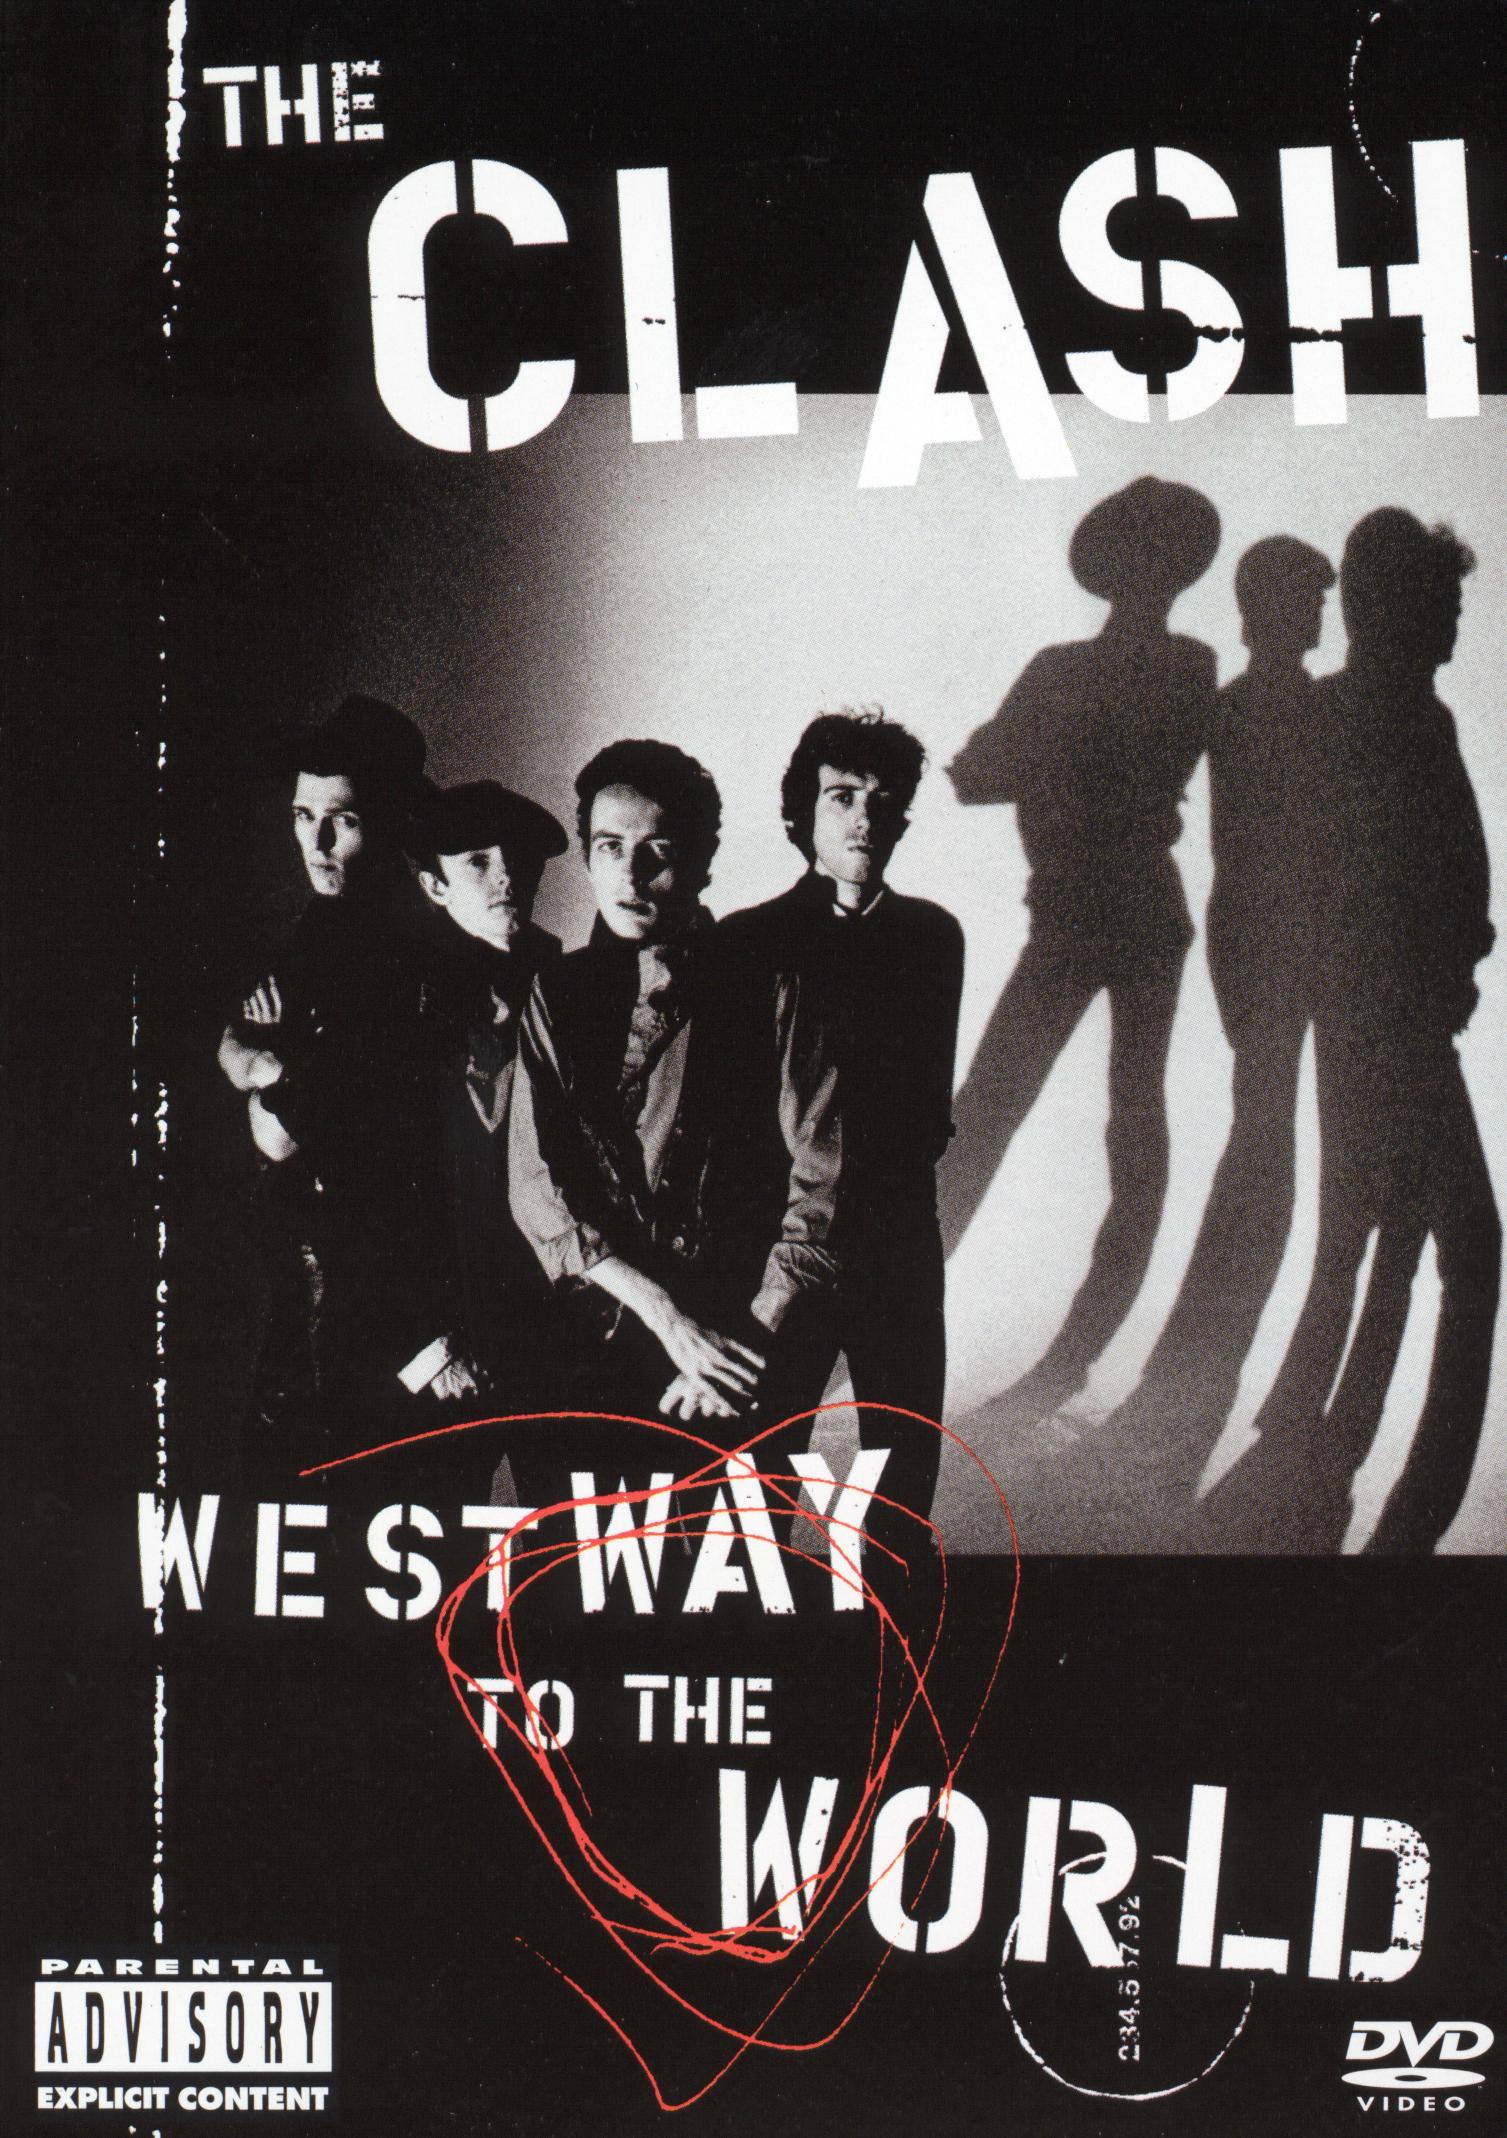 The Clash: Westway to the World (2000)